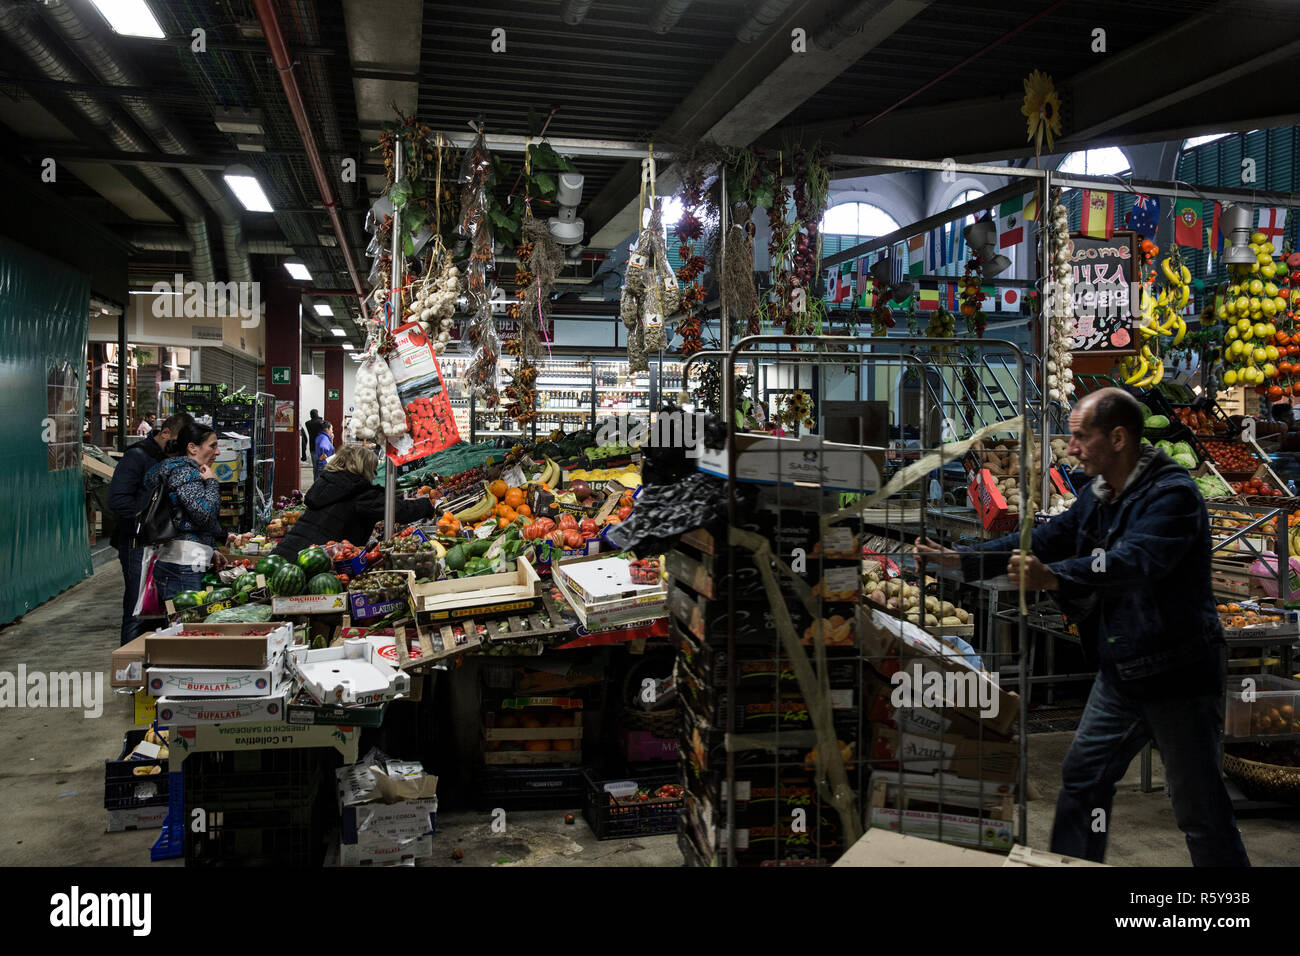 Mercato Centrale, Florence, Italy on May 2, 2016. - Stock Image